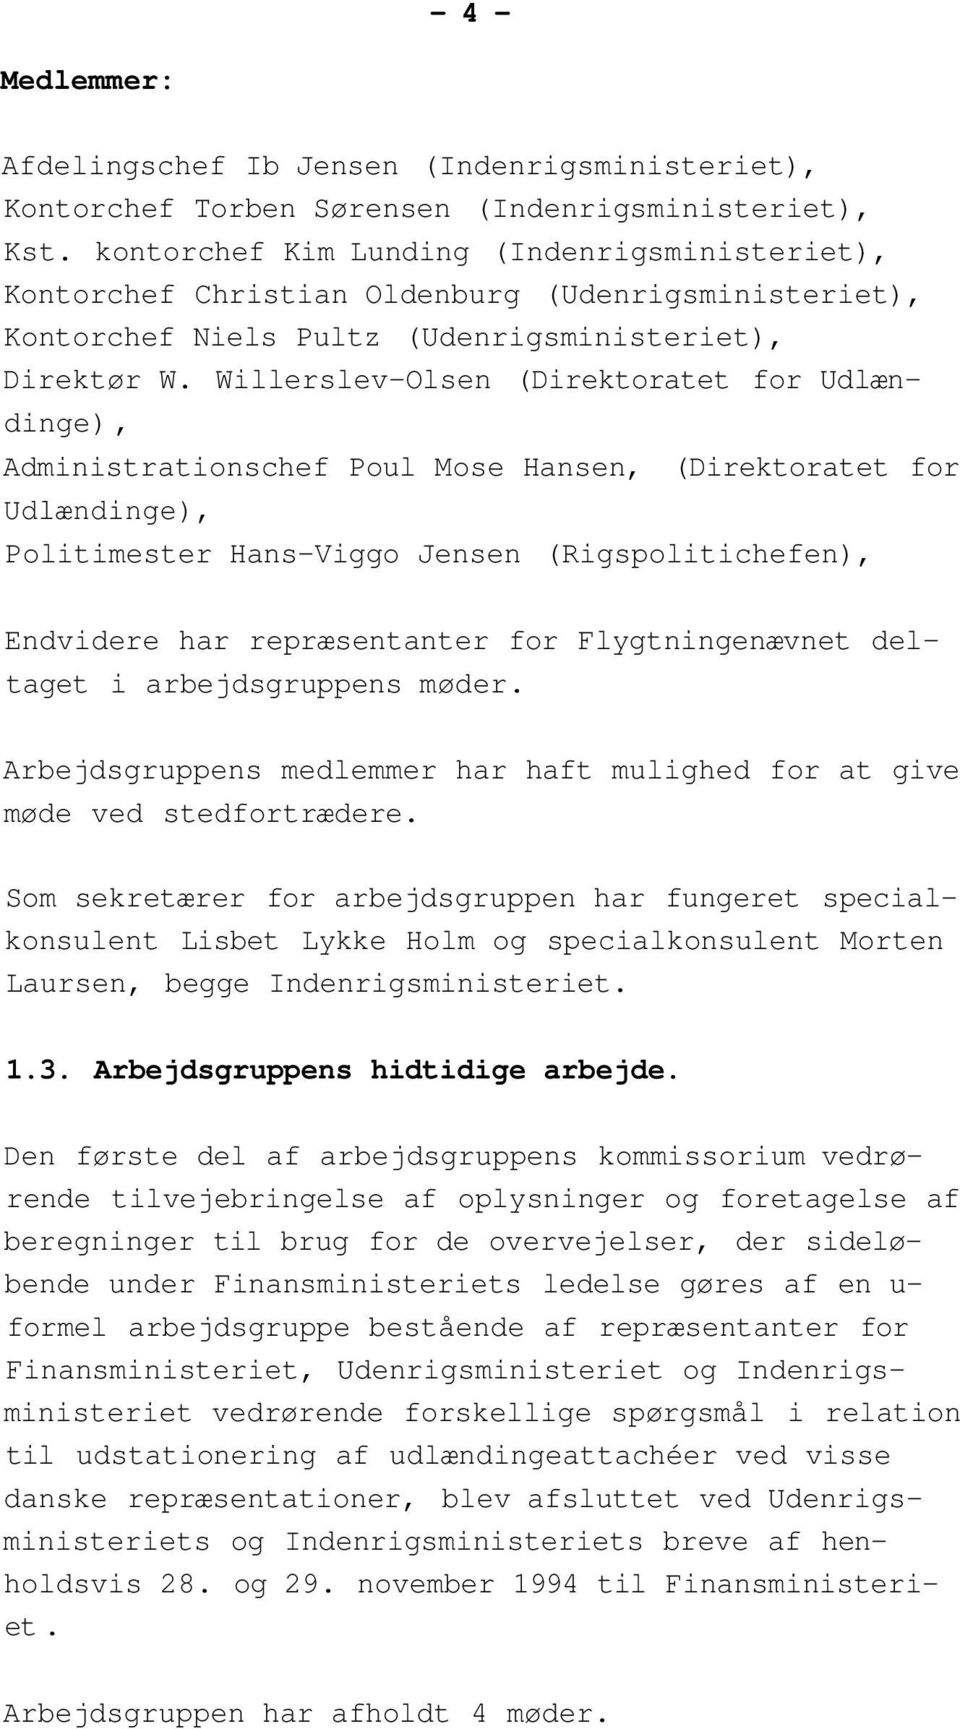 Willerslev-Olsen (Direktoratet for Udlændinge), Administrationschef Poul Mose Hansen, (Direktoratet for Udlændinge), Politimester Hans-Viggo Jensen (Rigspolitichefen), Endvidere har repræsentanter